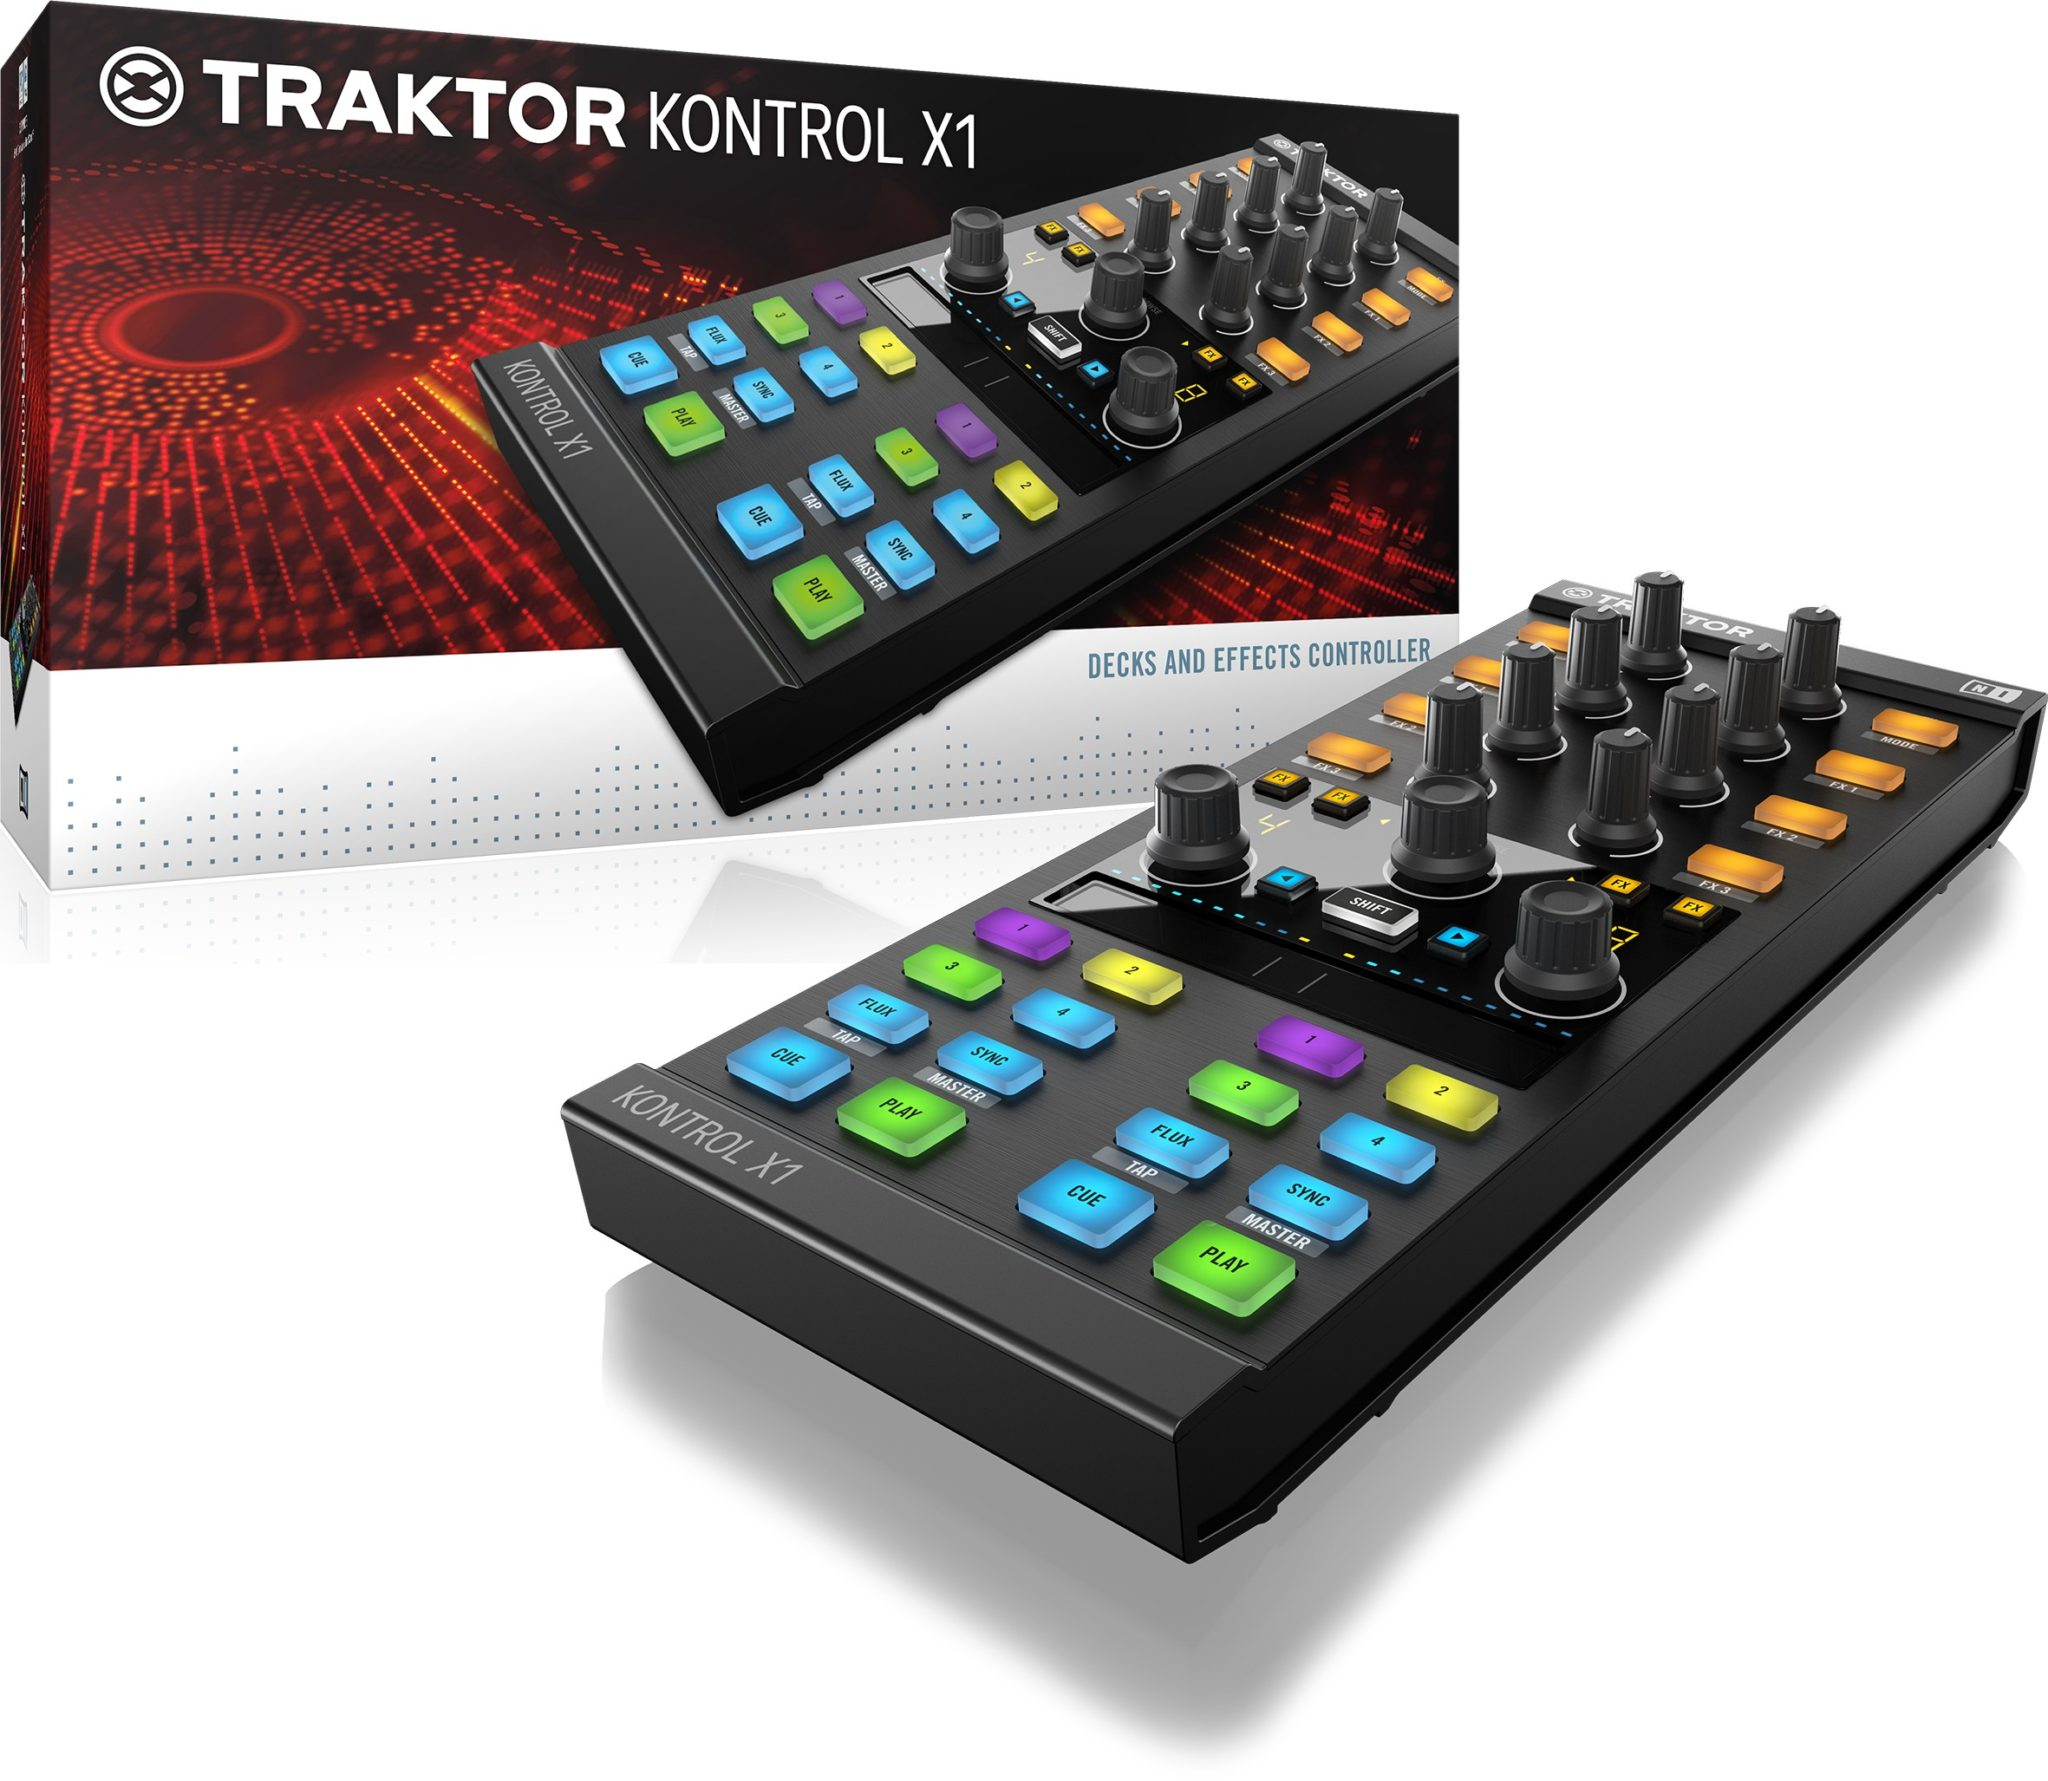 TRAKTOR_KONTROL_X1-MK2_packshot-and-hardware_reflection